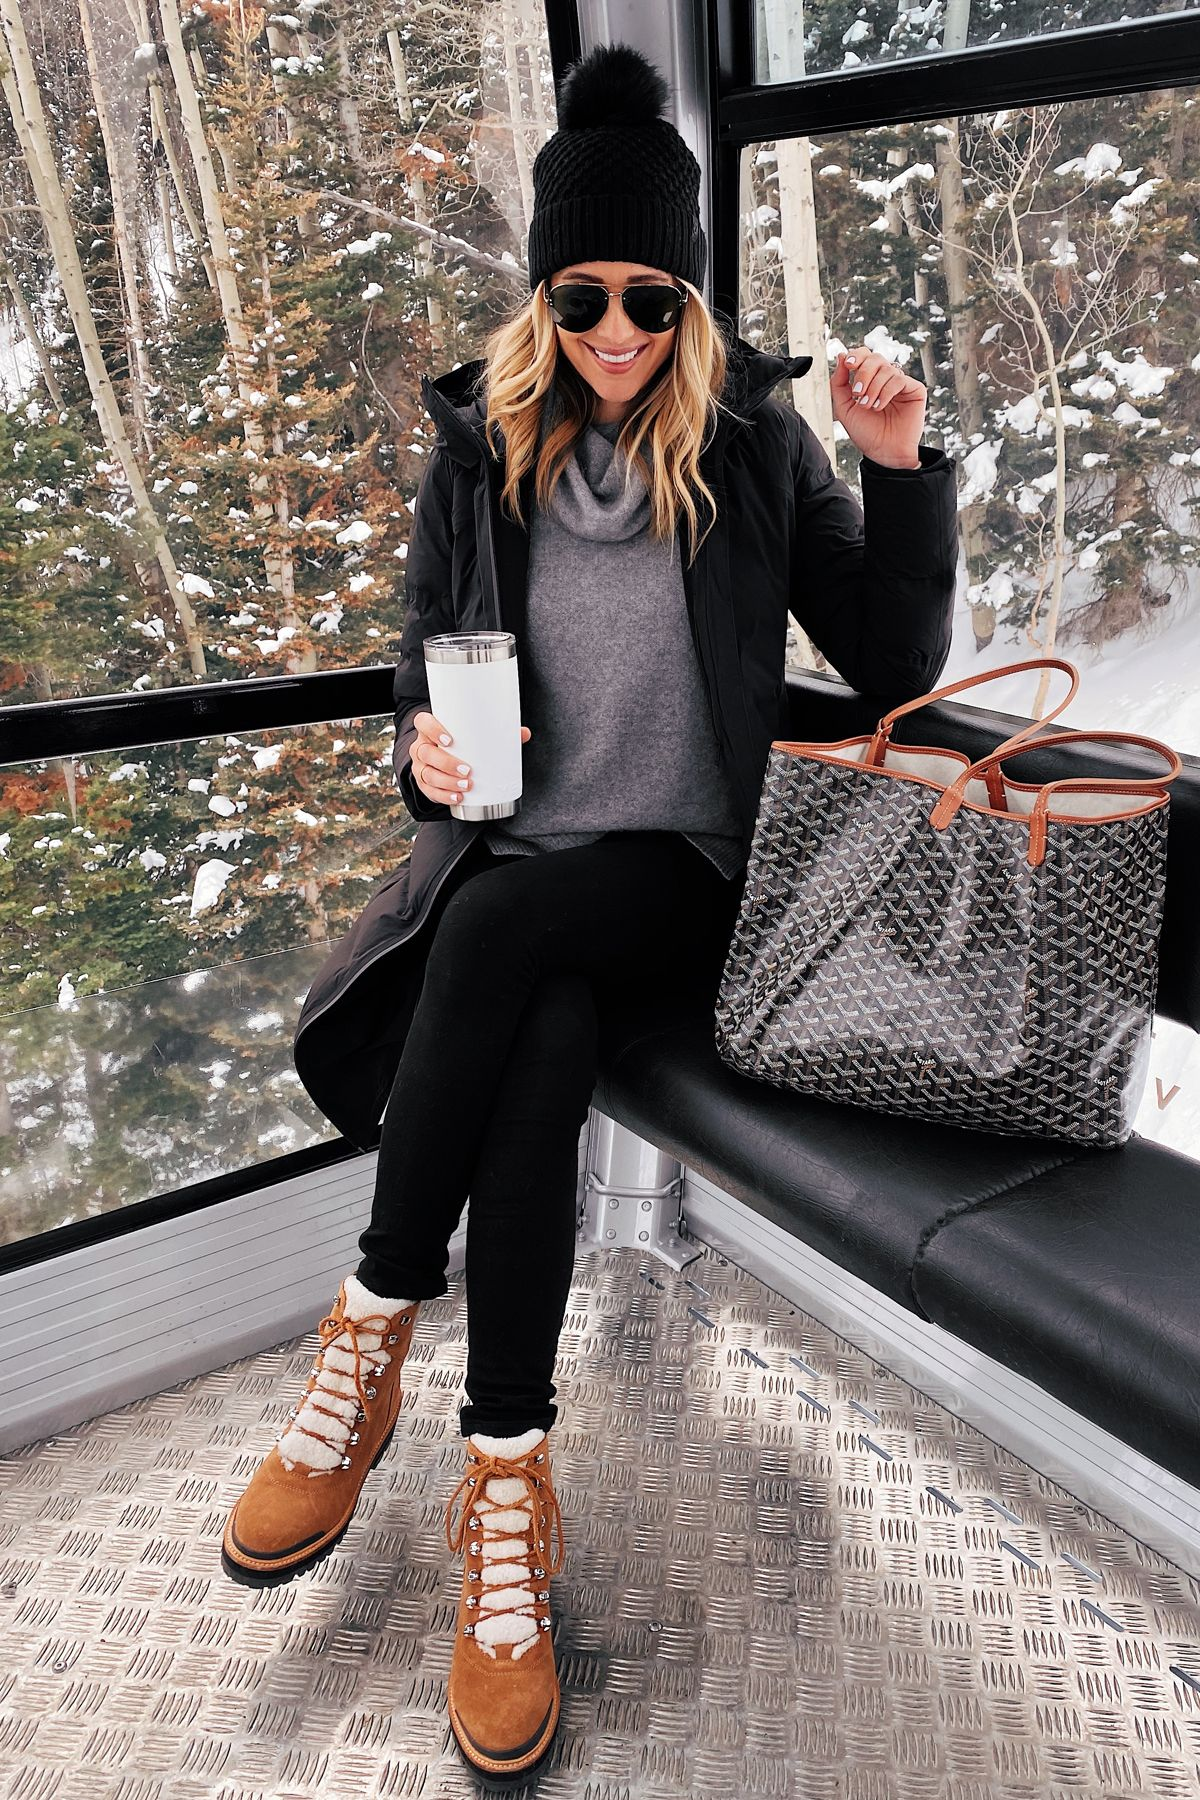 Winter Outfit, What to Pack for a Ski Trip: Best Gear & Outfit Guide | Fashion Jackson